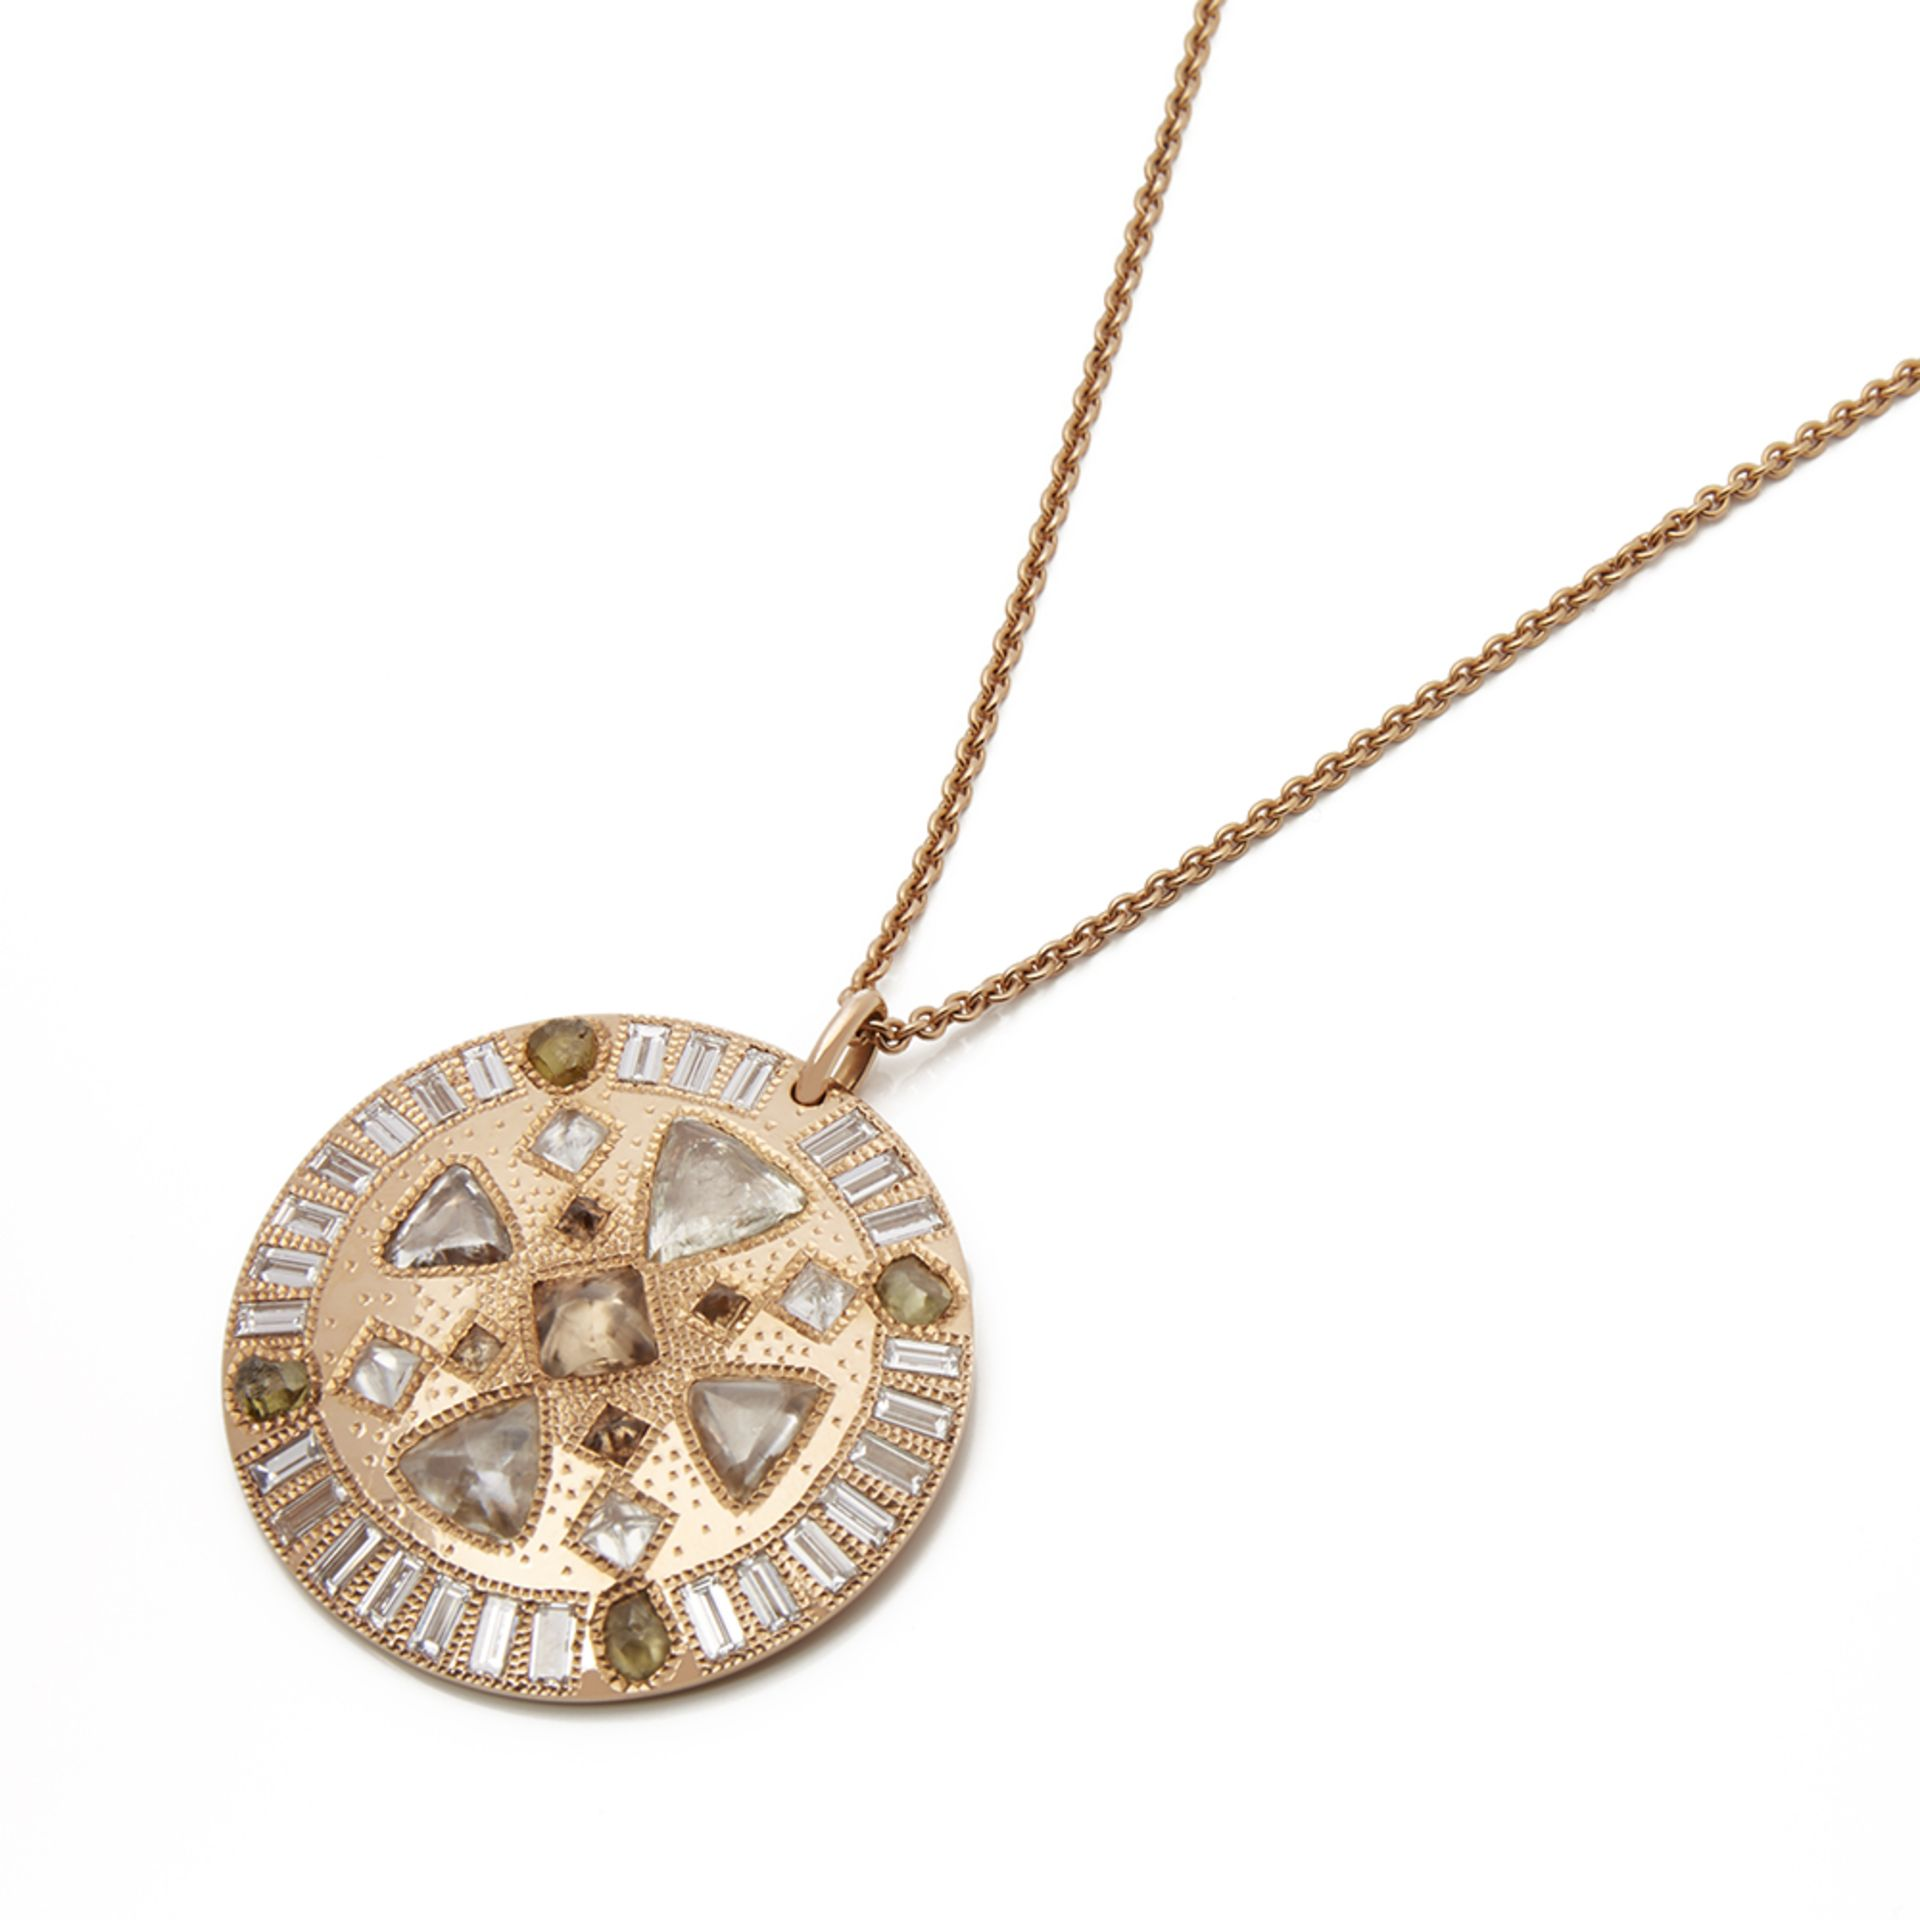 Lot 8 - 18k Rose Gold Diamond Hope Talisman Necklace